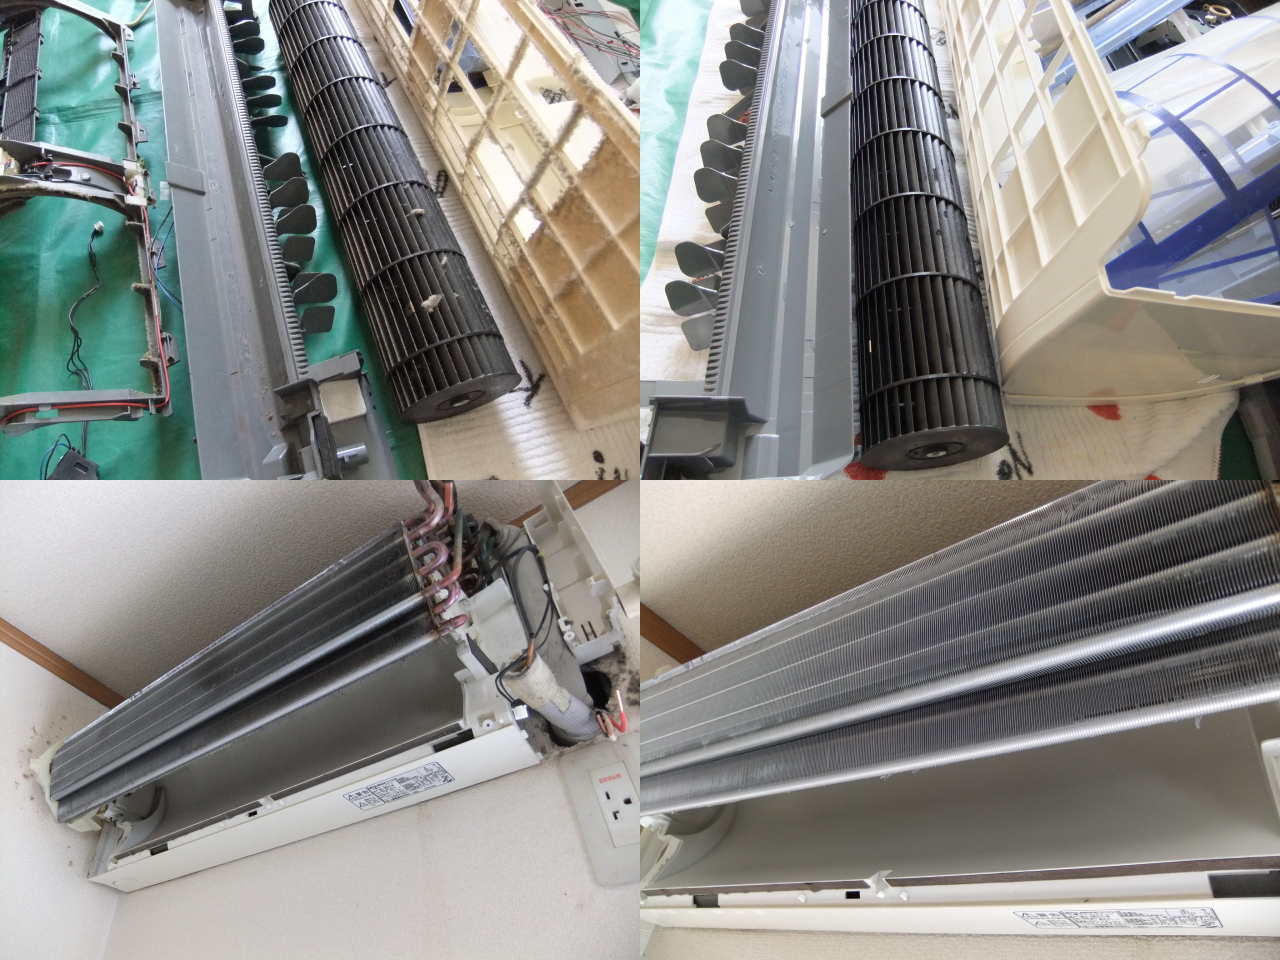 http://ajras.net/images/110621-aircon1.jpg